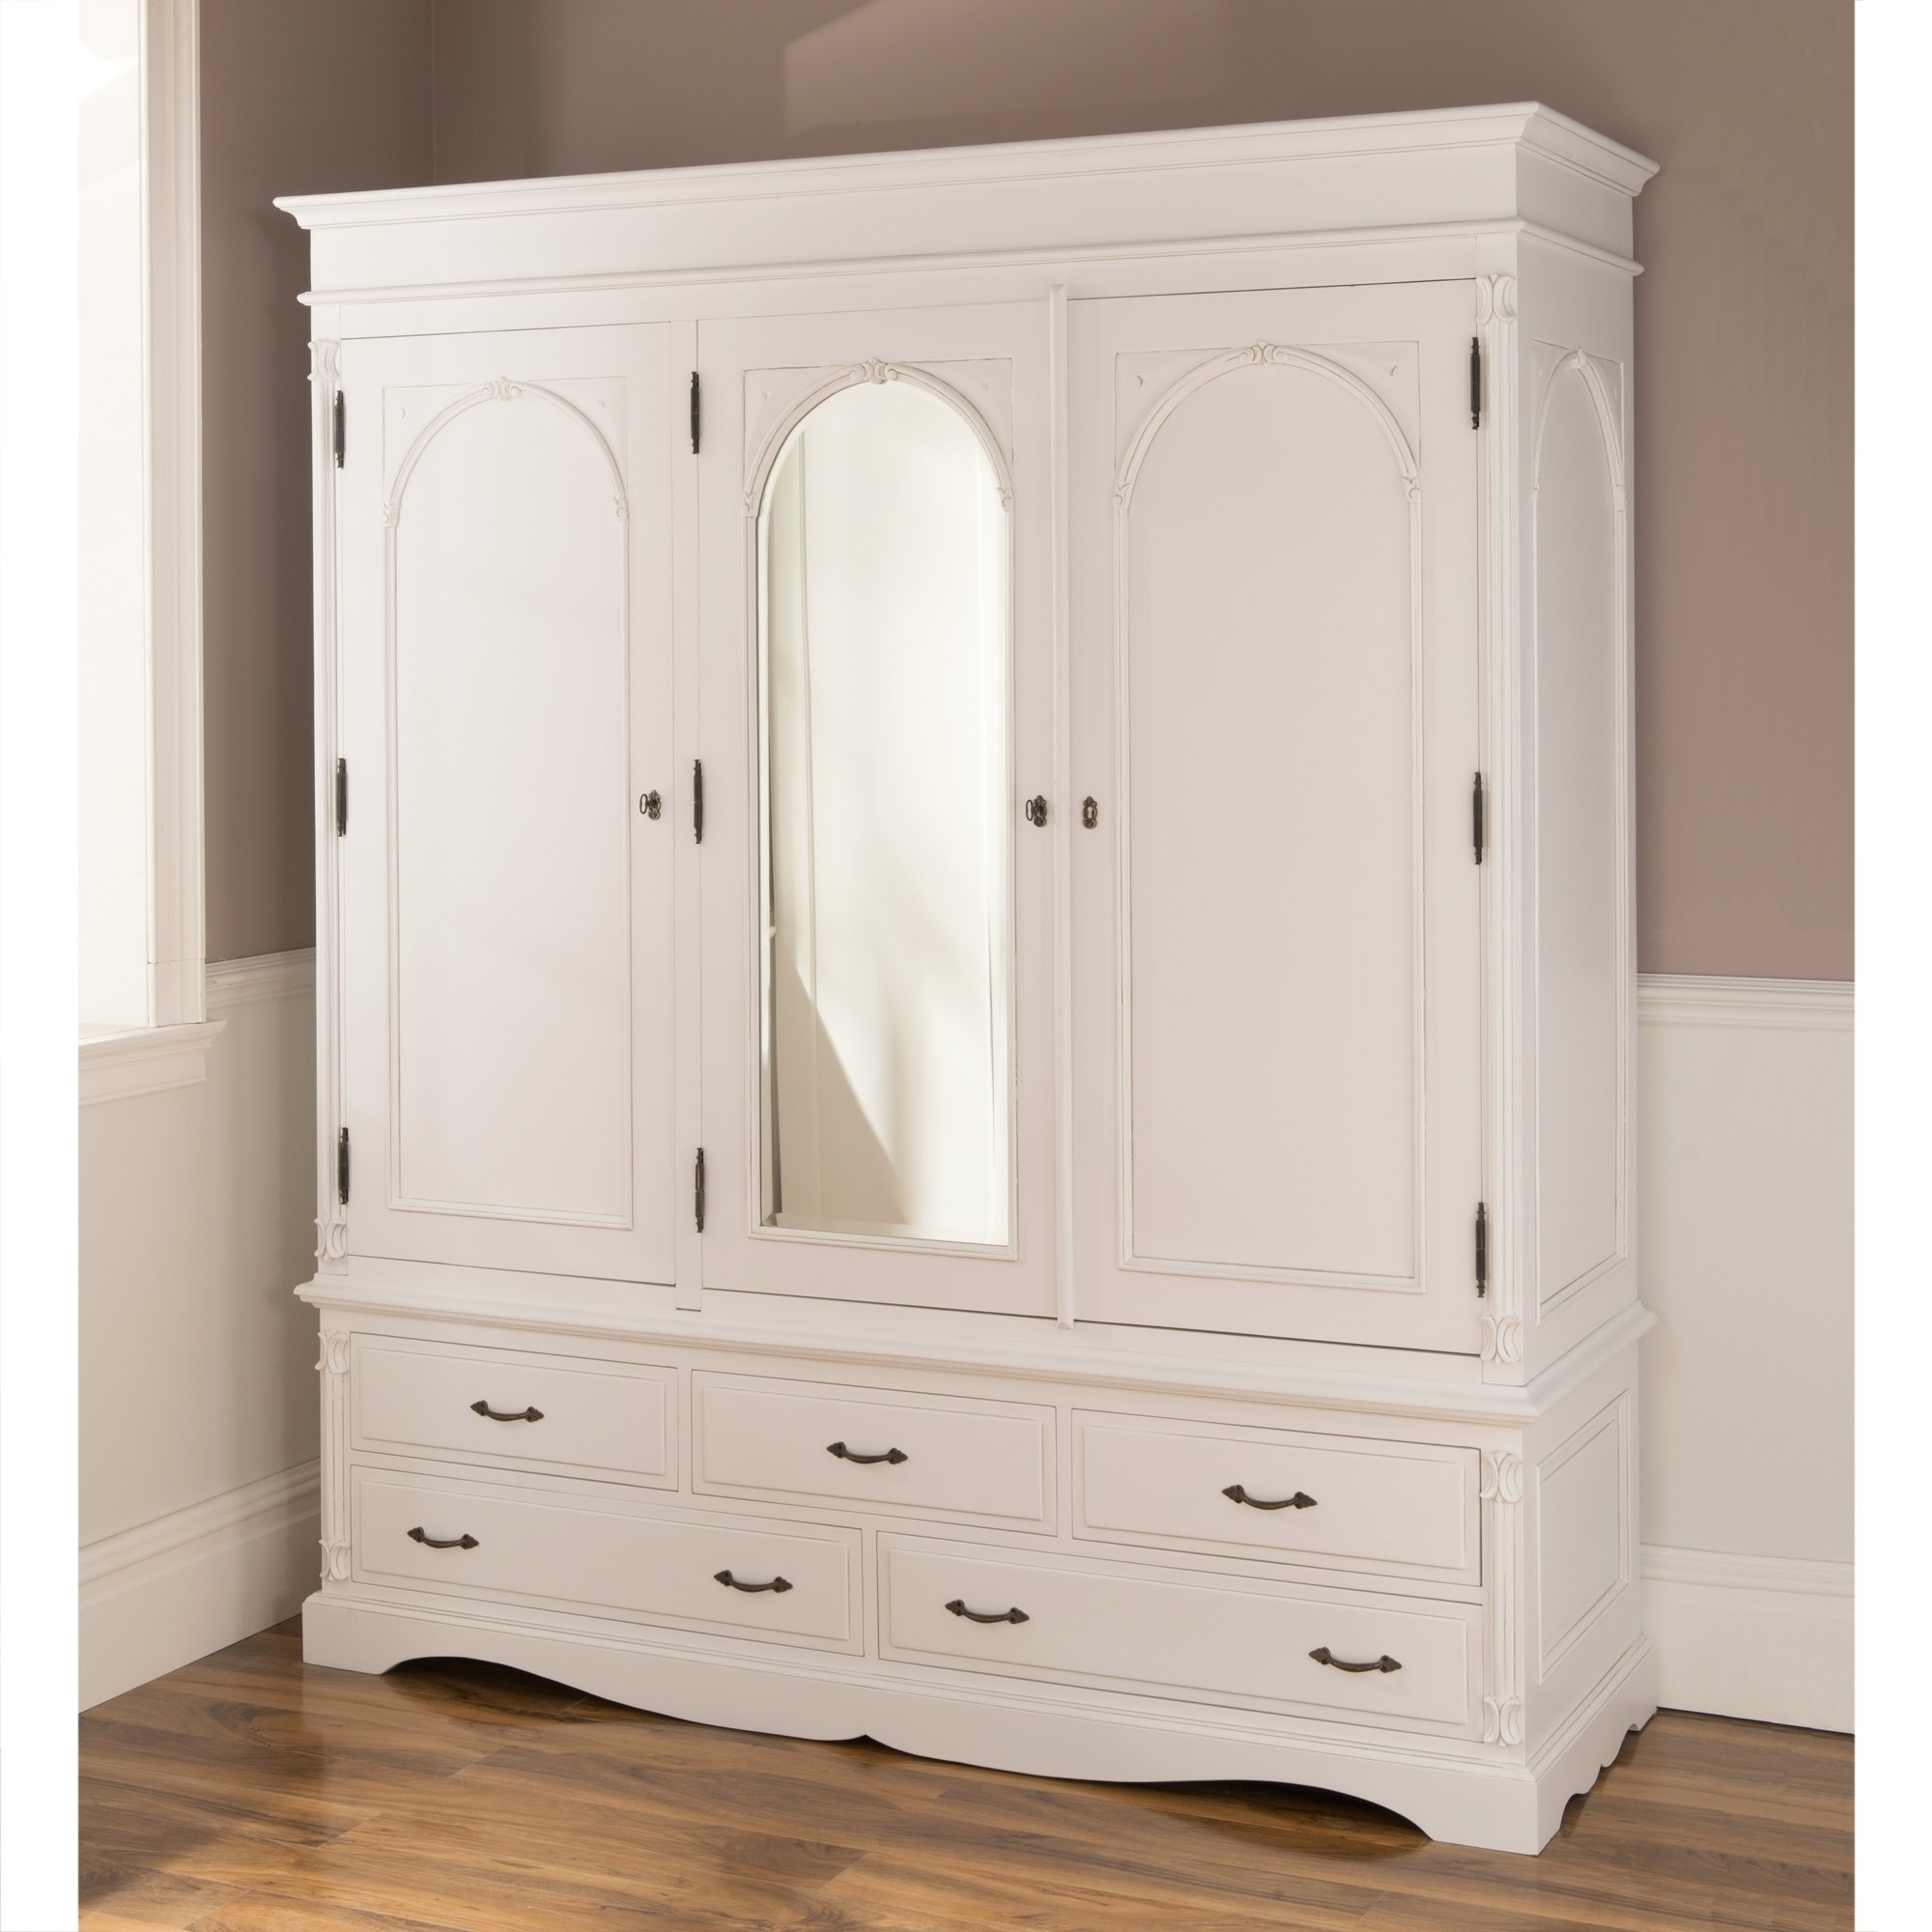 Antique French Style Wardrobe Pertaining To Most Current French Style White Wardrobes (View 1 of 15)